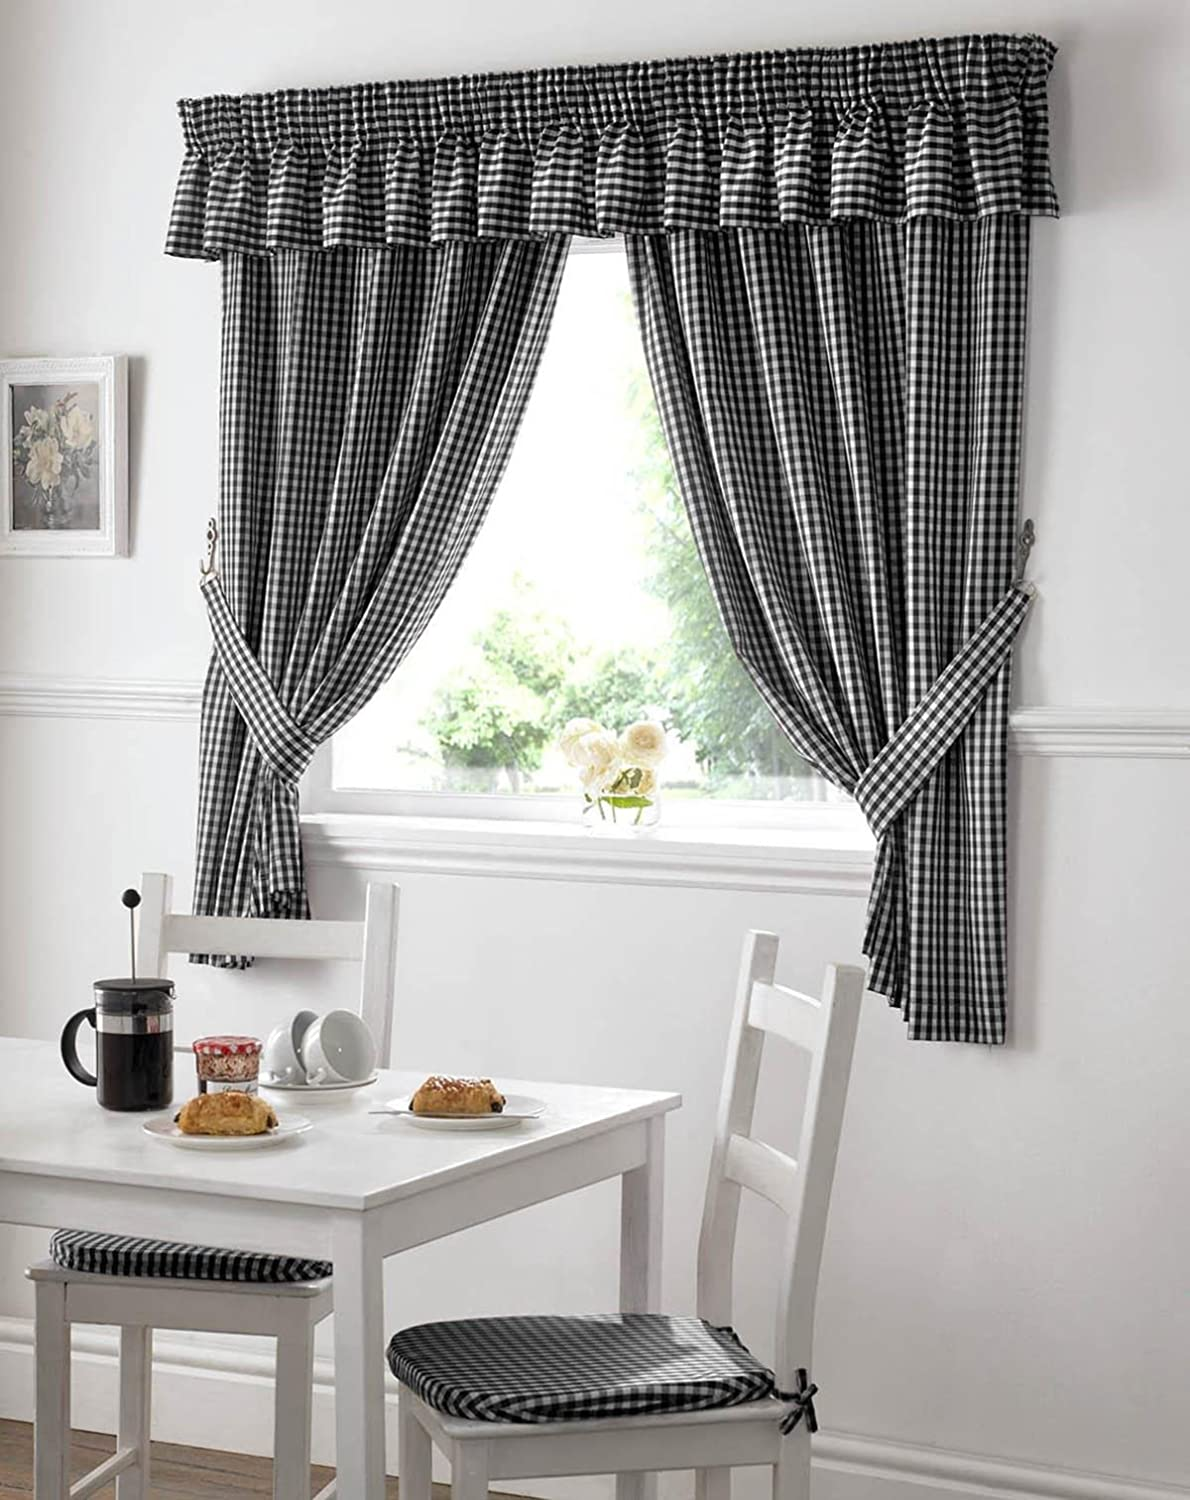 Amazon.com: GINGHAM CHECK BLACK WHITE KITCHEN CURTAINS DRAPES W46 X ...